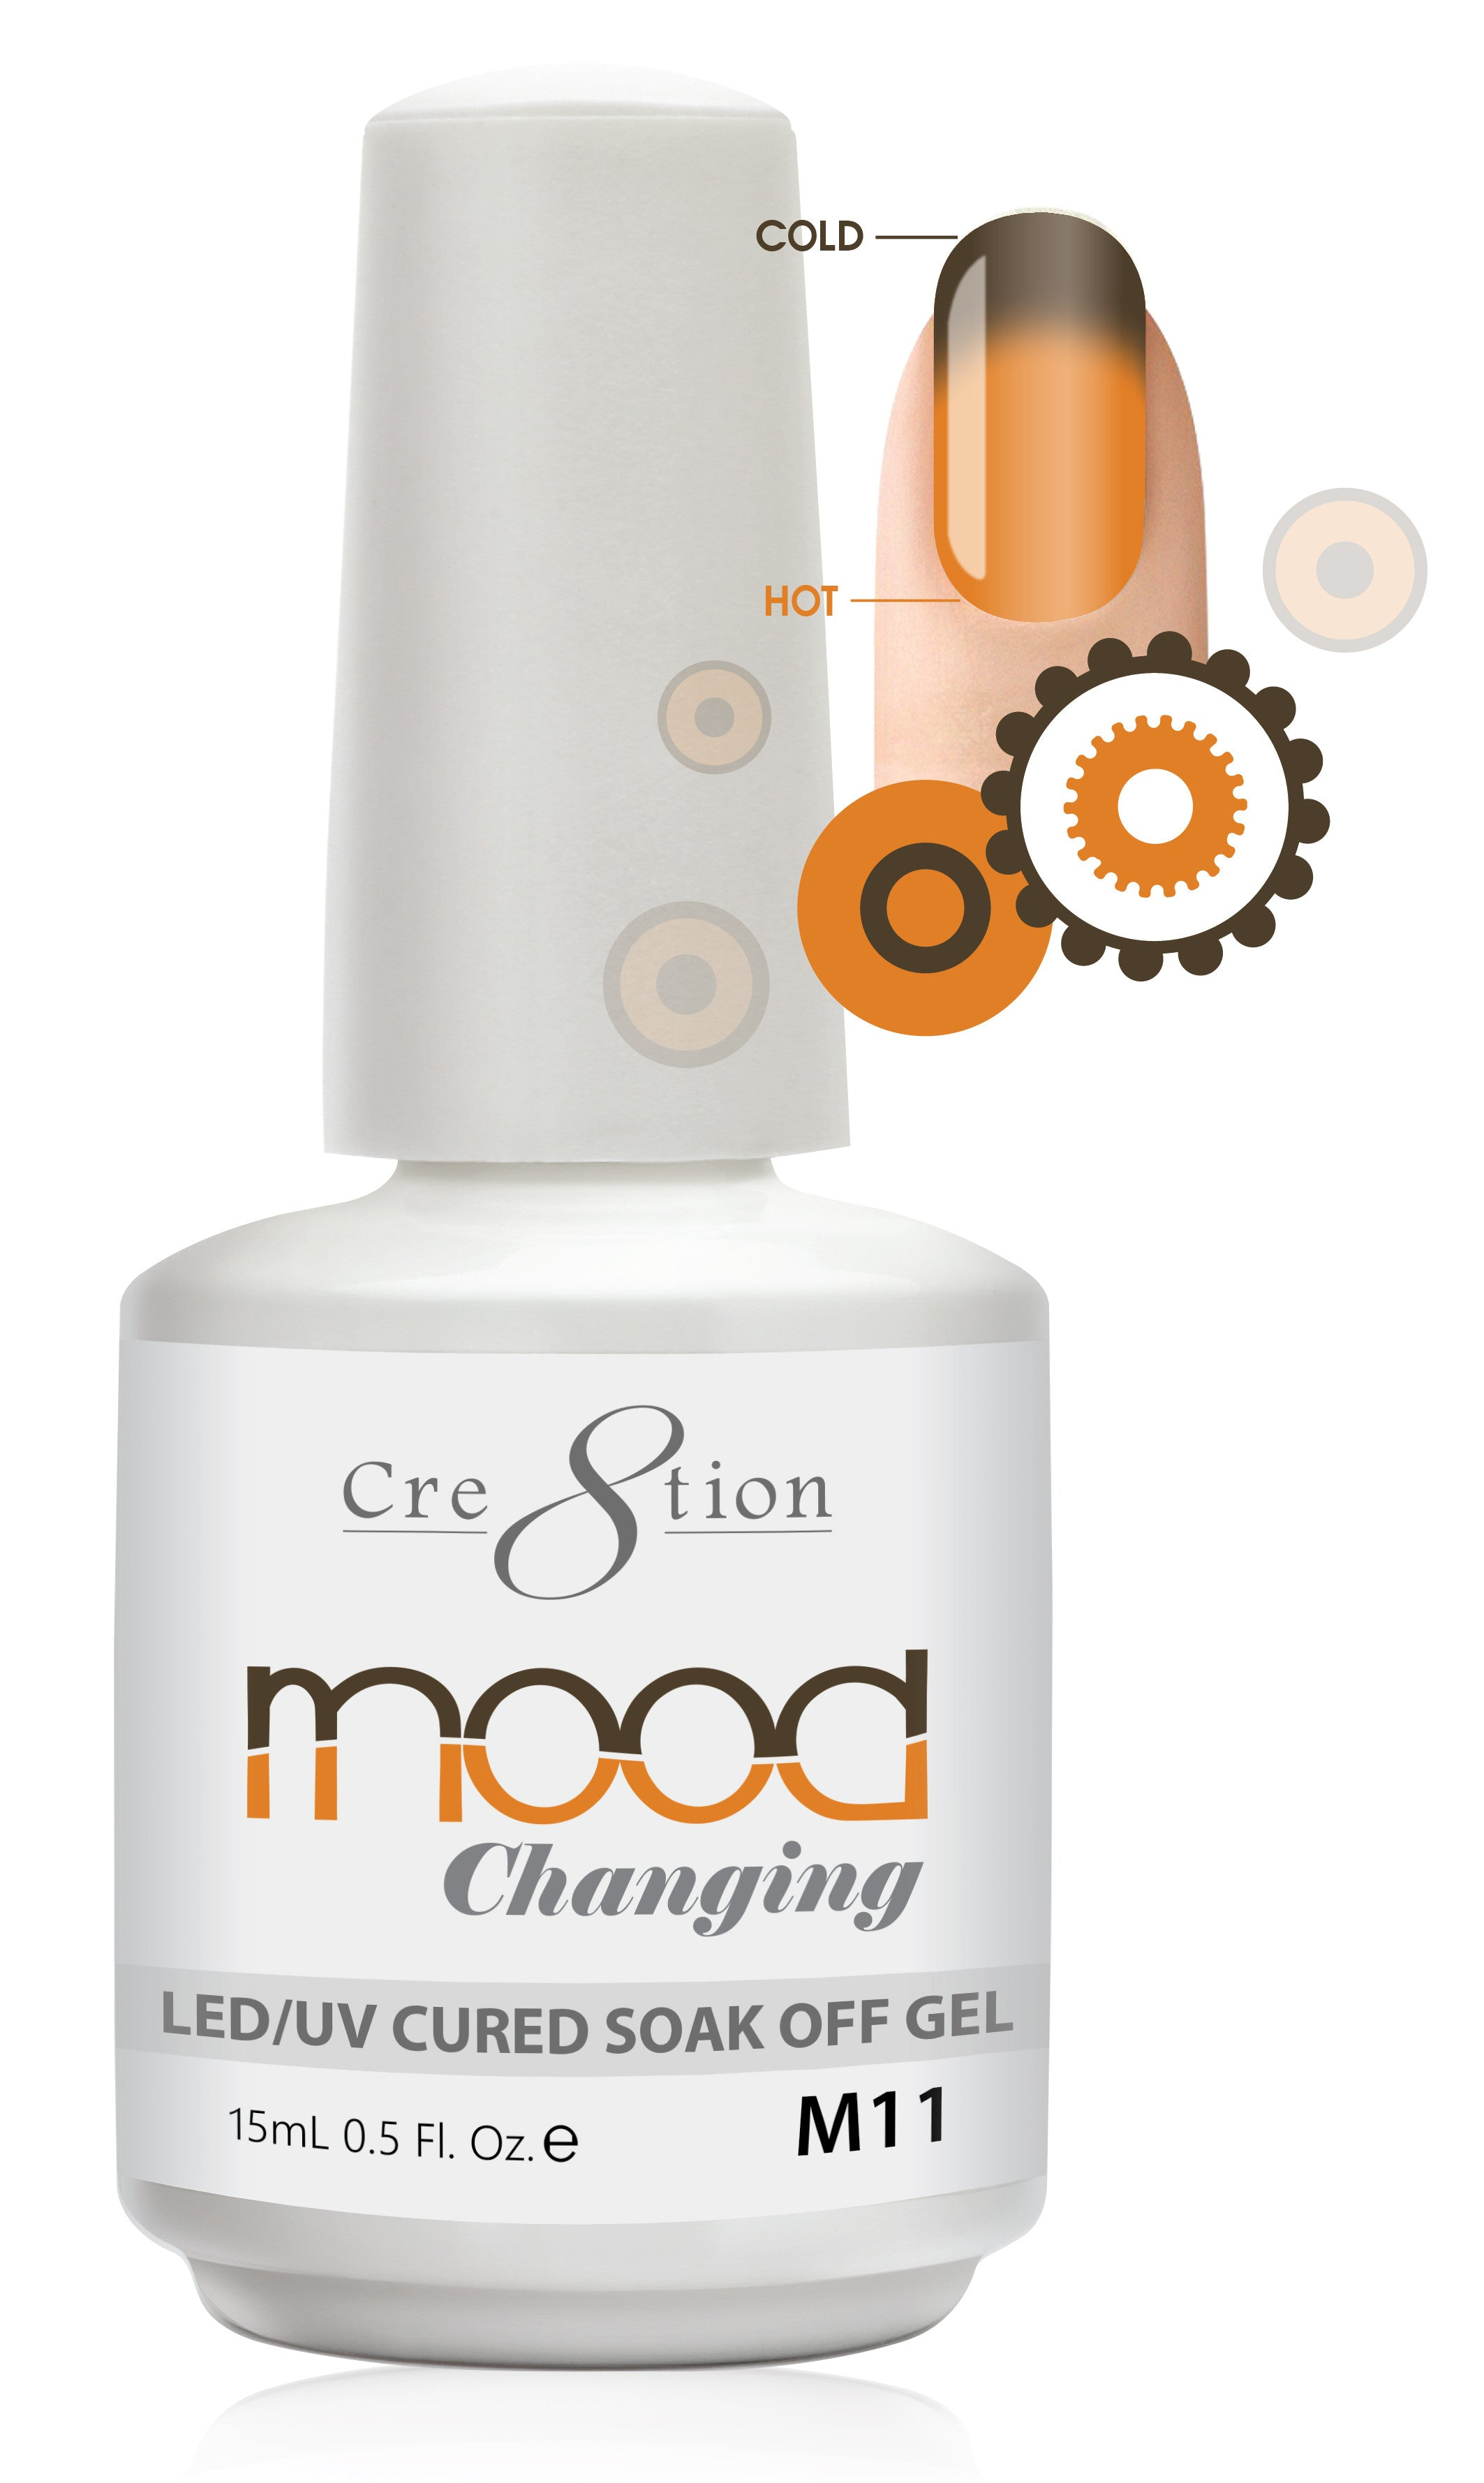 Cre8tion Mood Changing Soak Off Gel M11-Frost